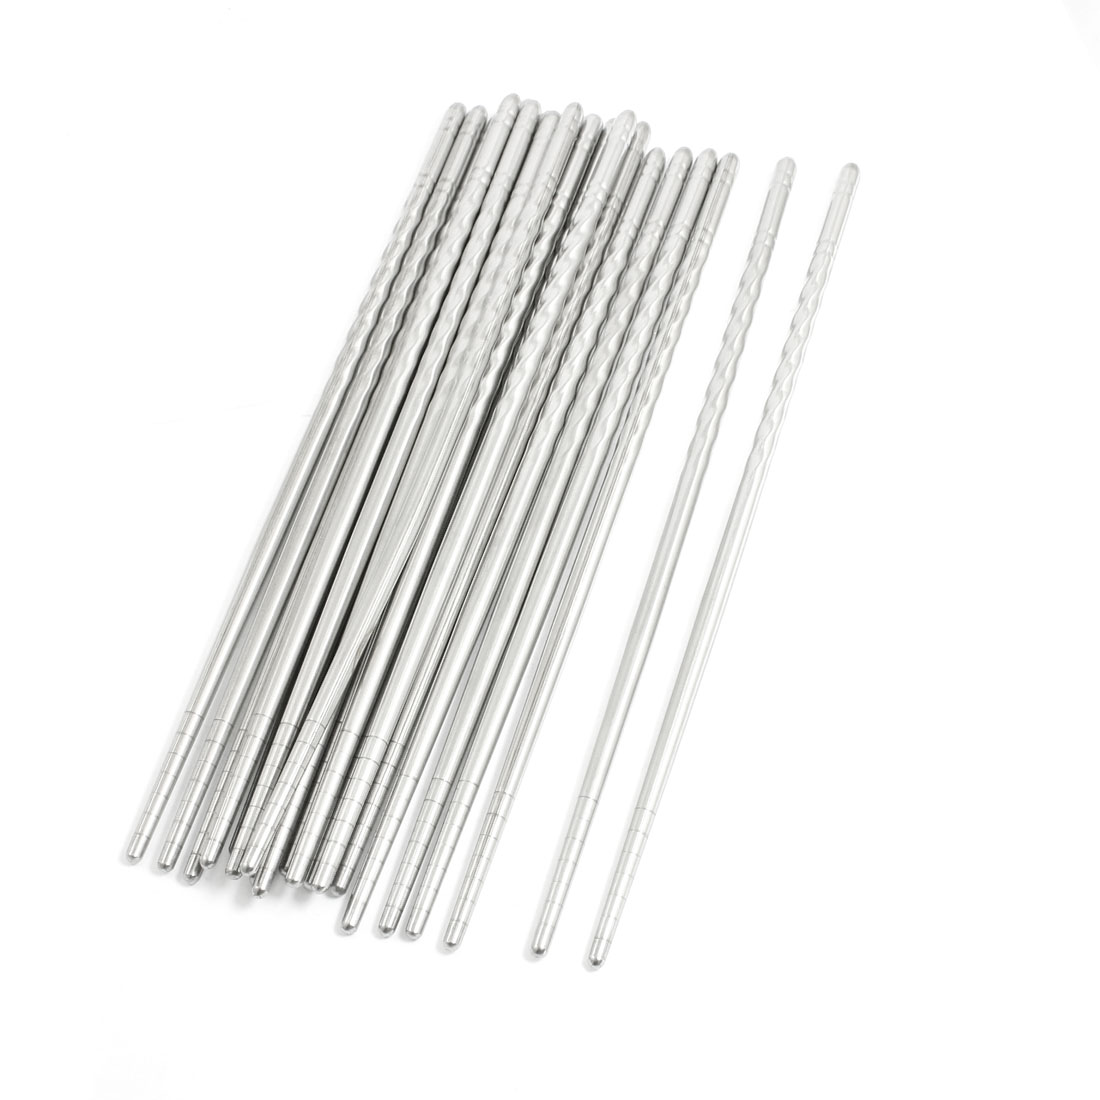 "10 Pairs 8.8"" Long Silver Tone Stainless Steel Chinese Chopsticks"